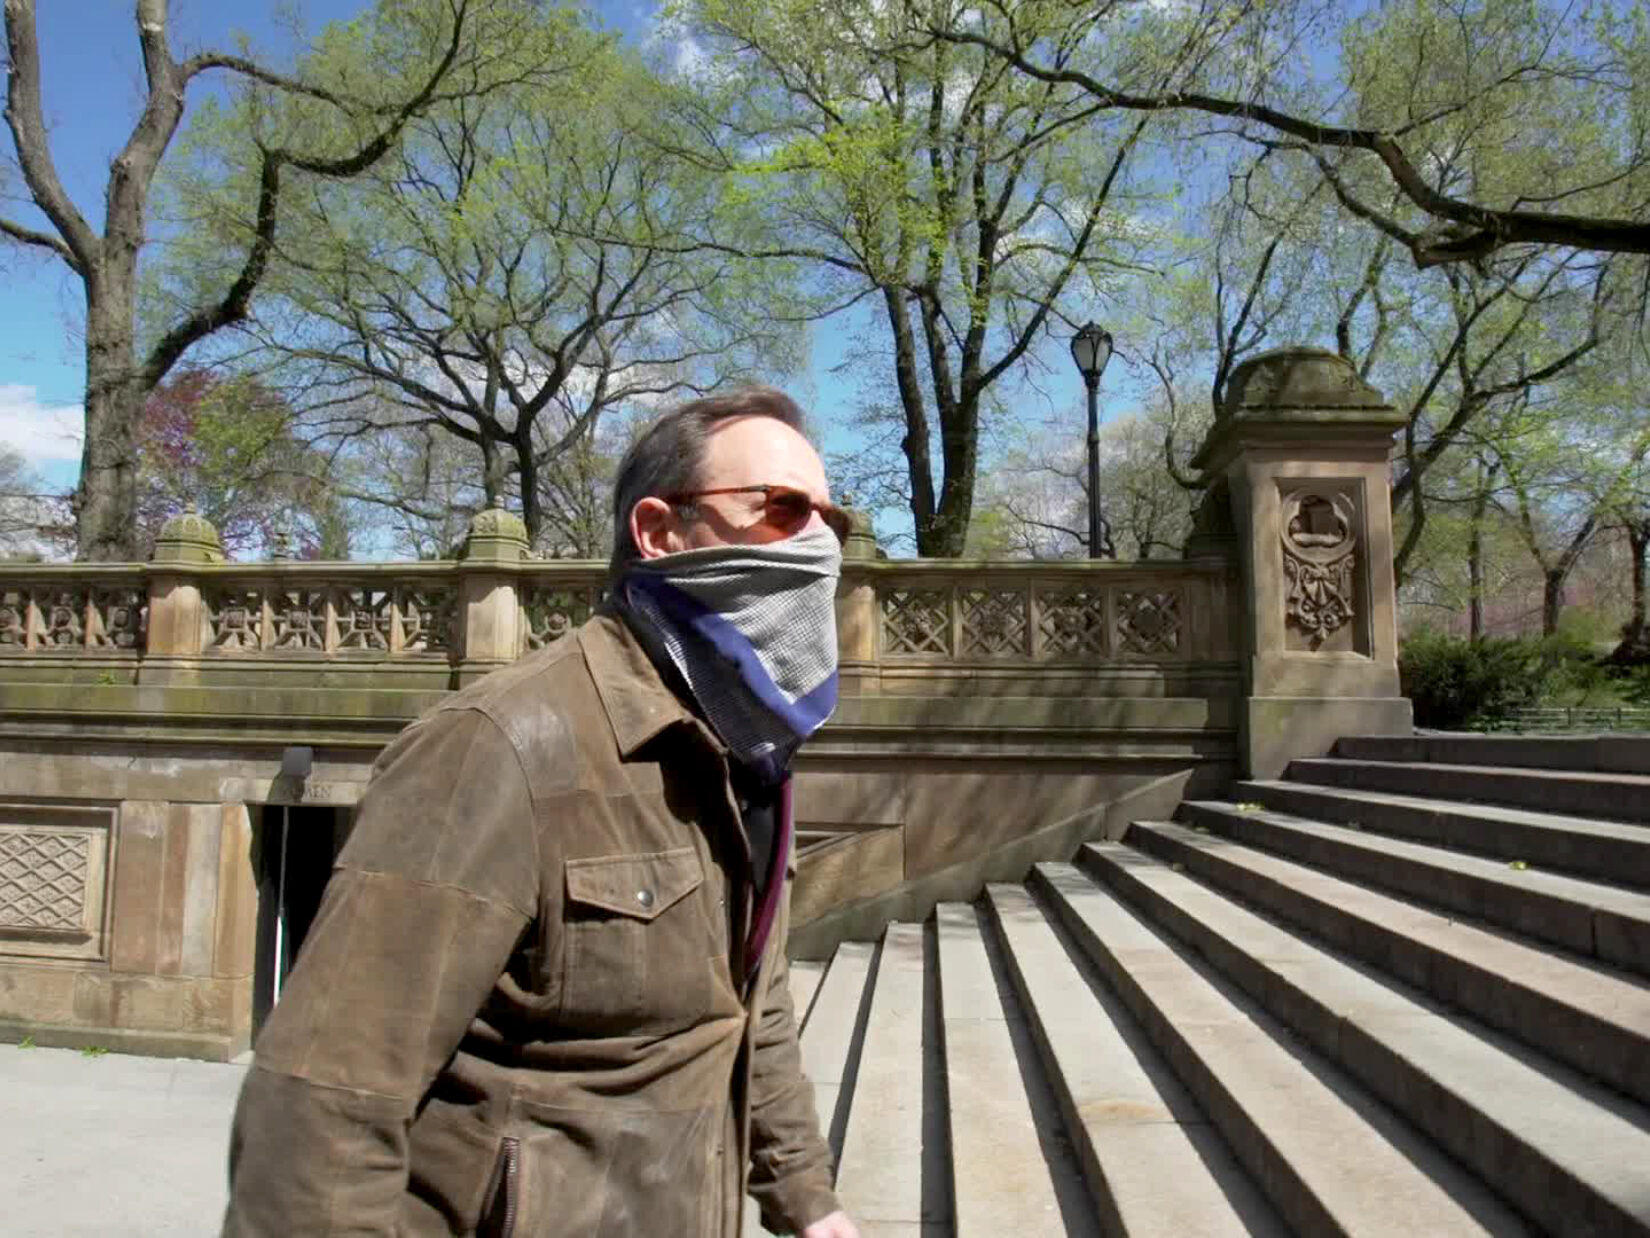 Anthony Mason walking up the stairs at Bethesda Terrace